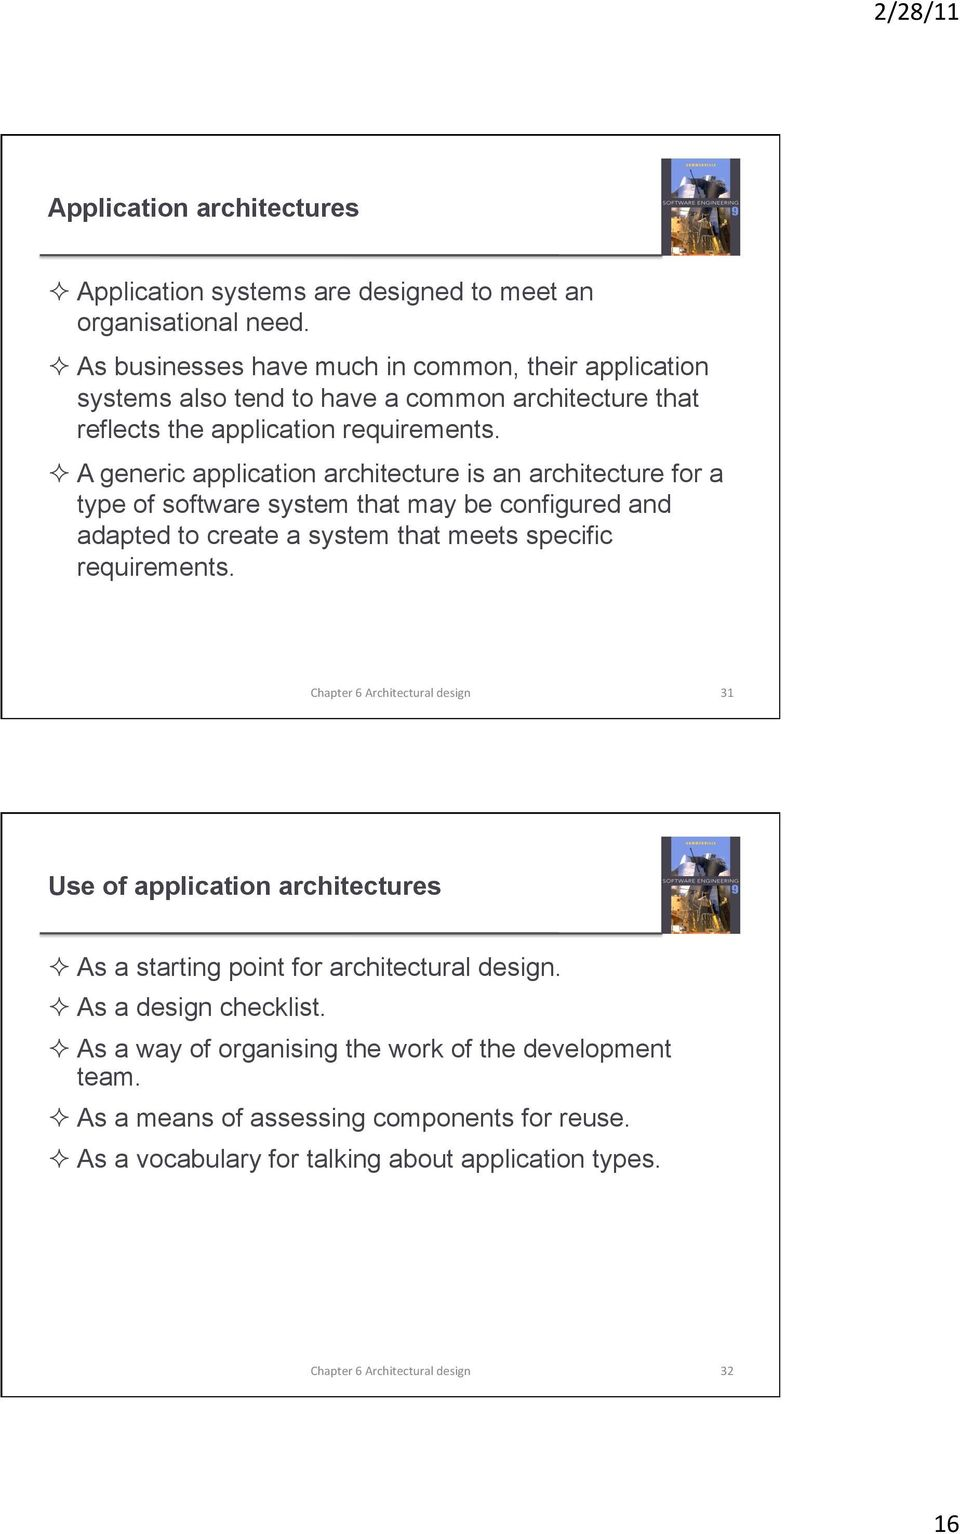 A generic application architecture is an architecture for a type of software system that may be configured and adapted to create a system that meets specific